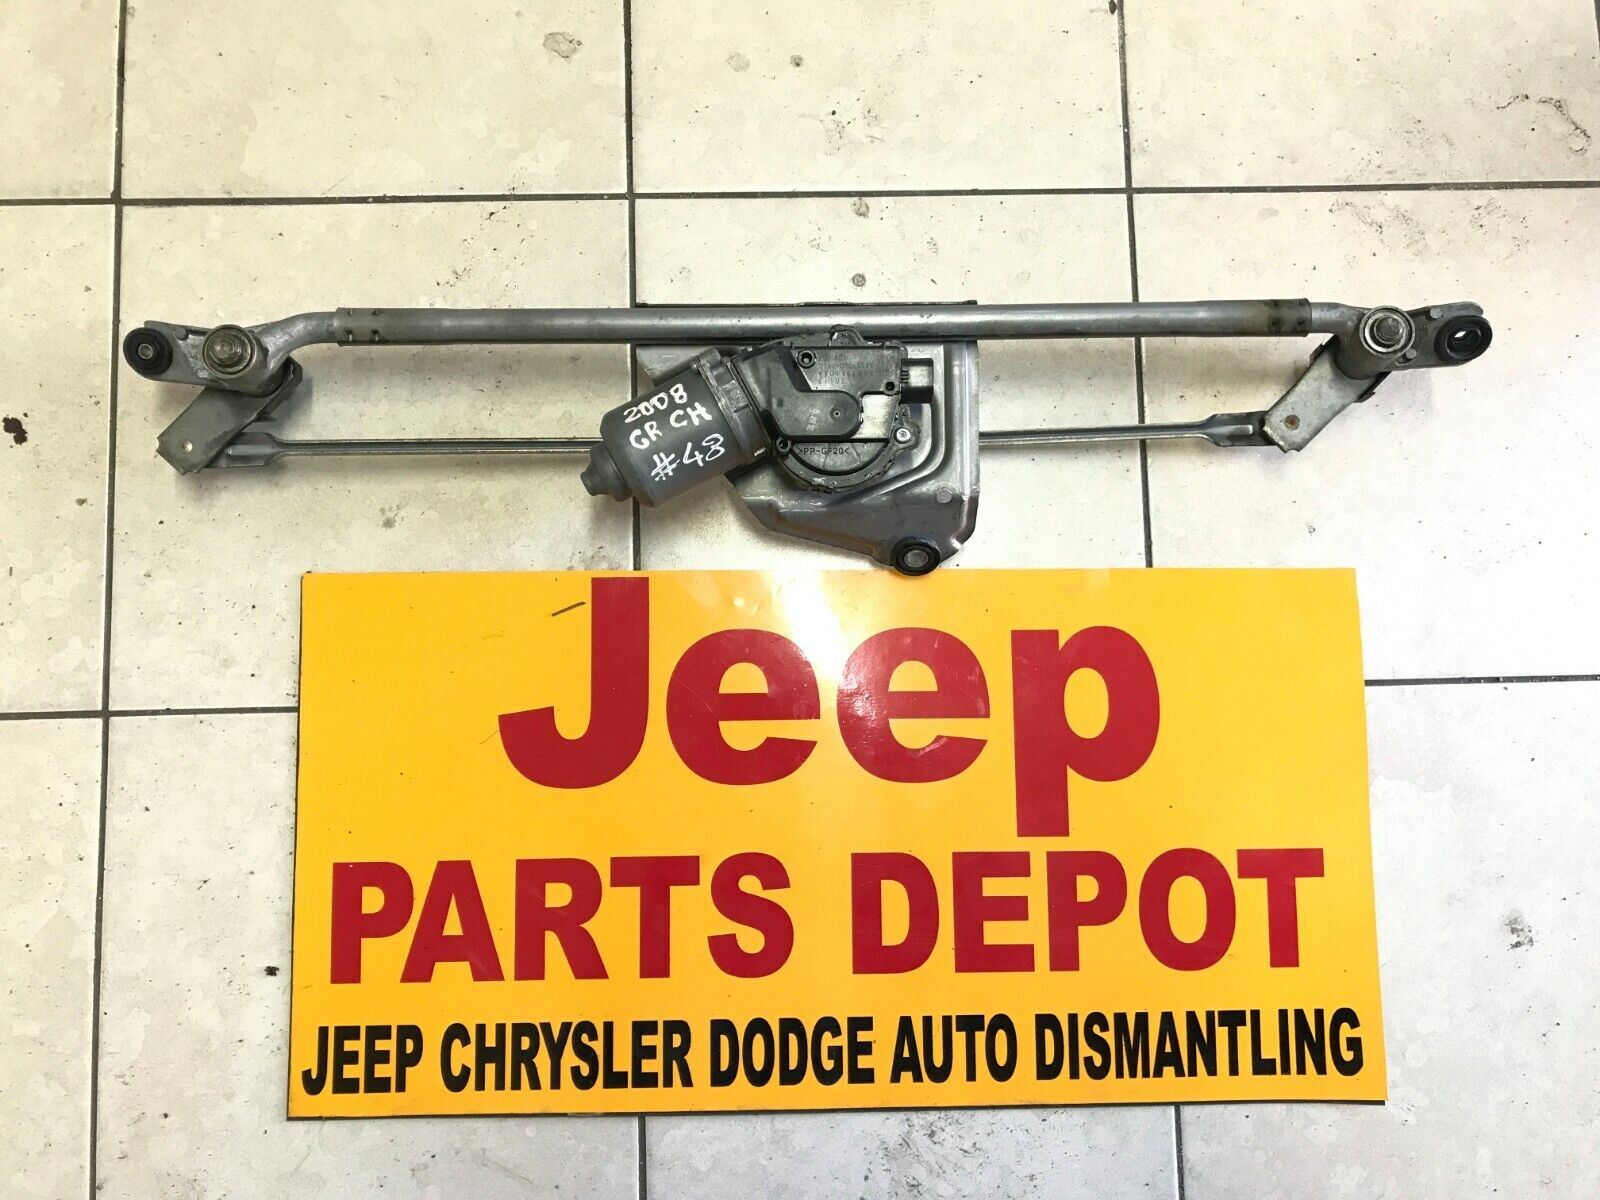 Used Jeep Dash Parts for Sale - Page 26